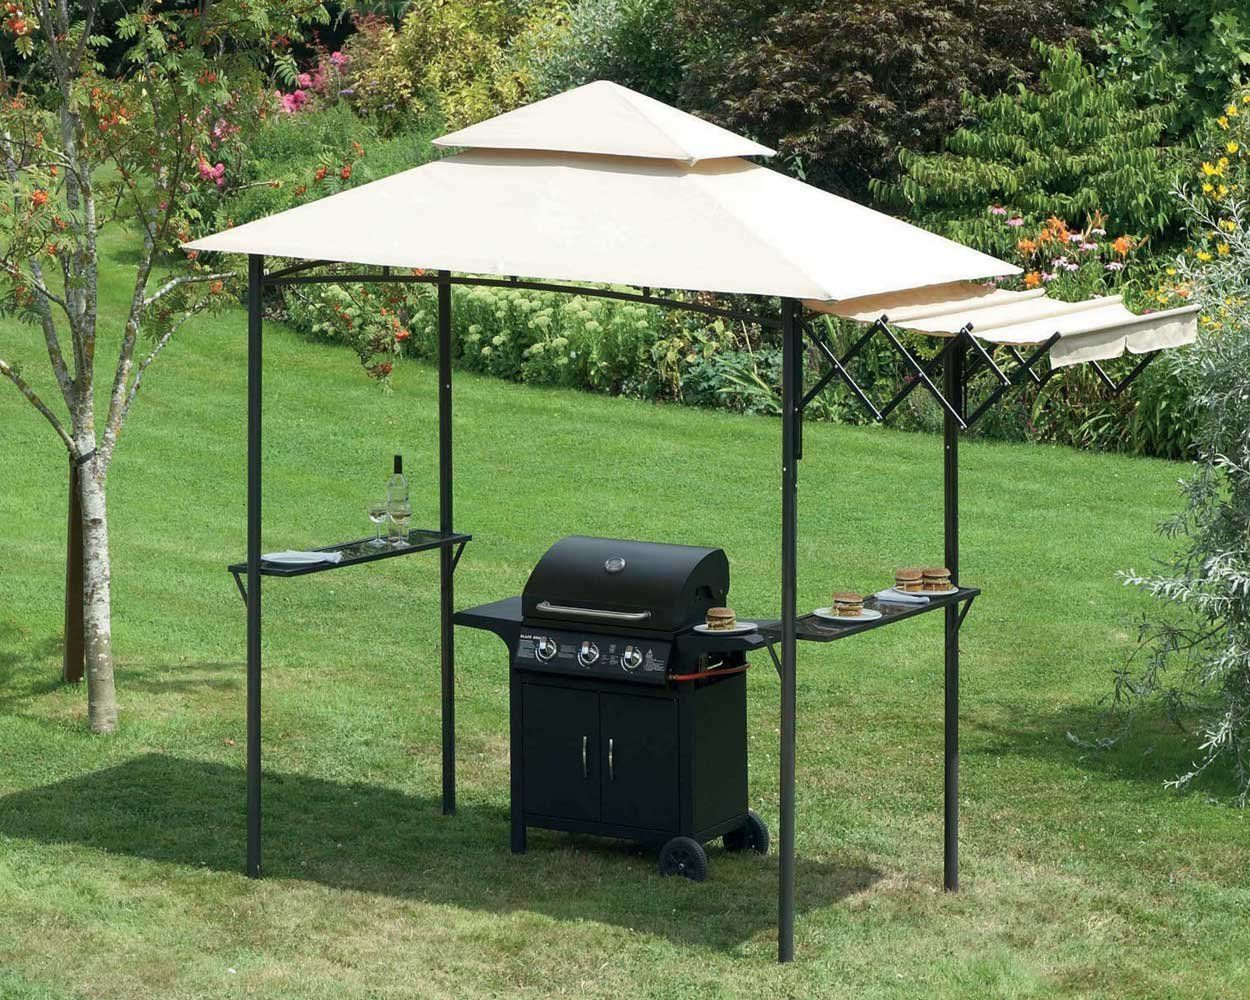 Abri Pour Barbecue Exterieur Bbq Shelter With Extending Awning Gazebo Ideal Uk Barbecue